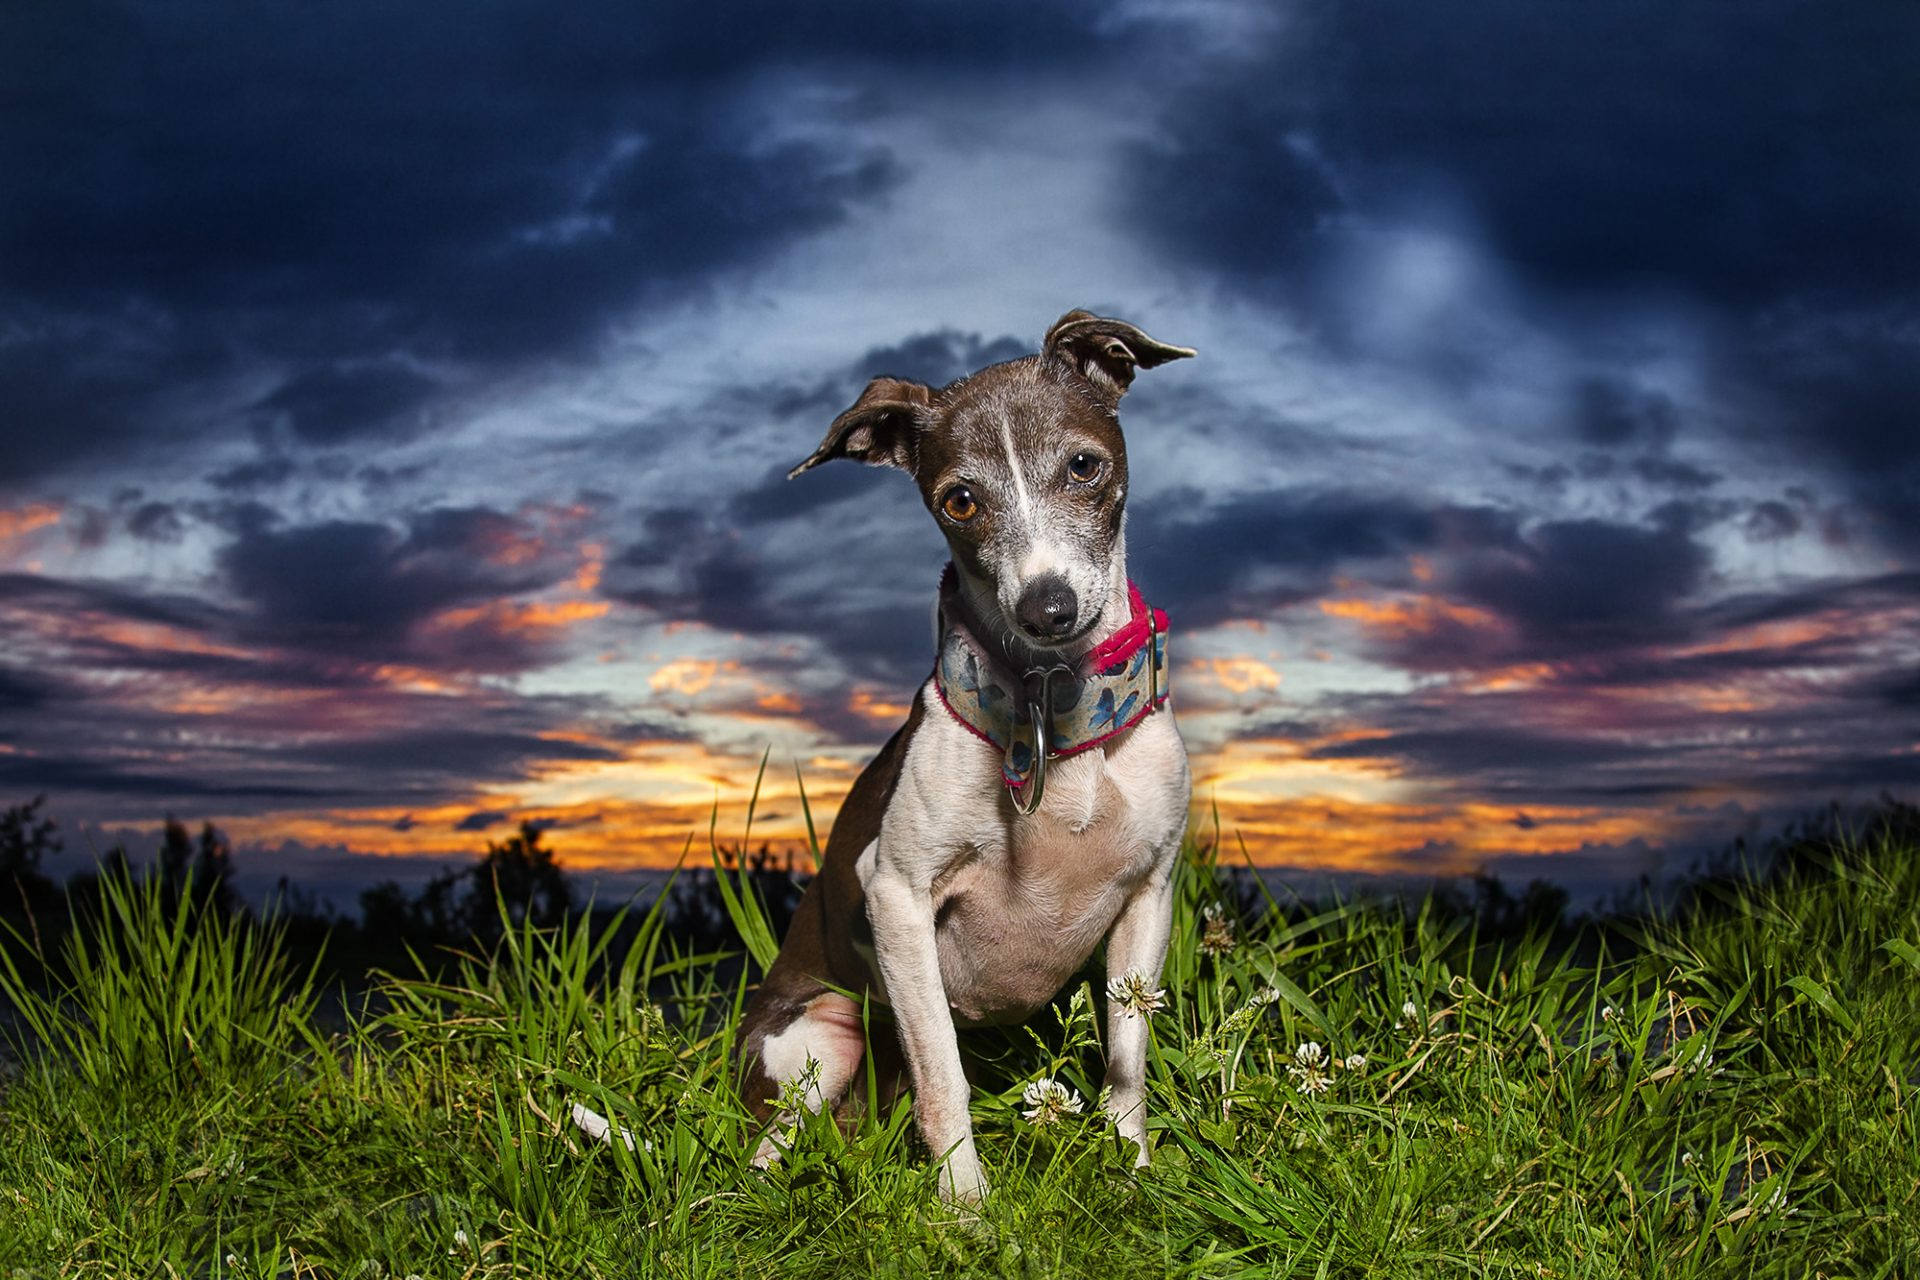 Italian Greyhound dog in beautiful sunset